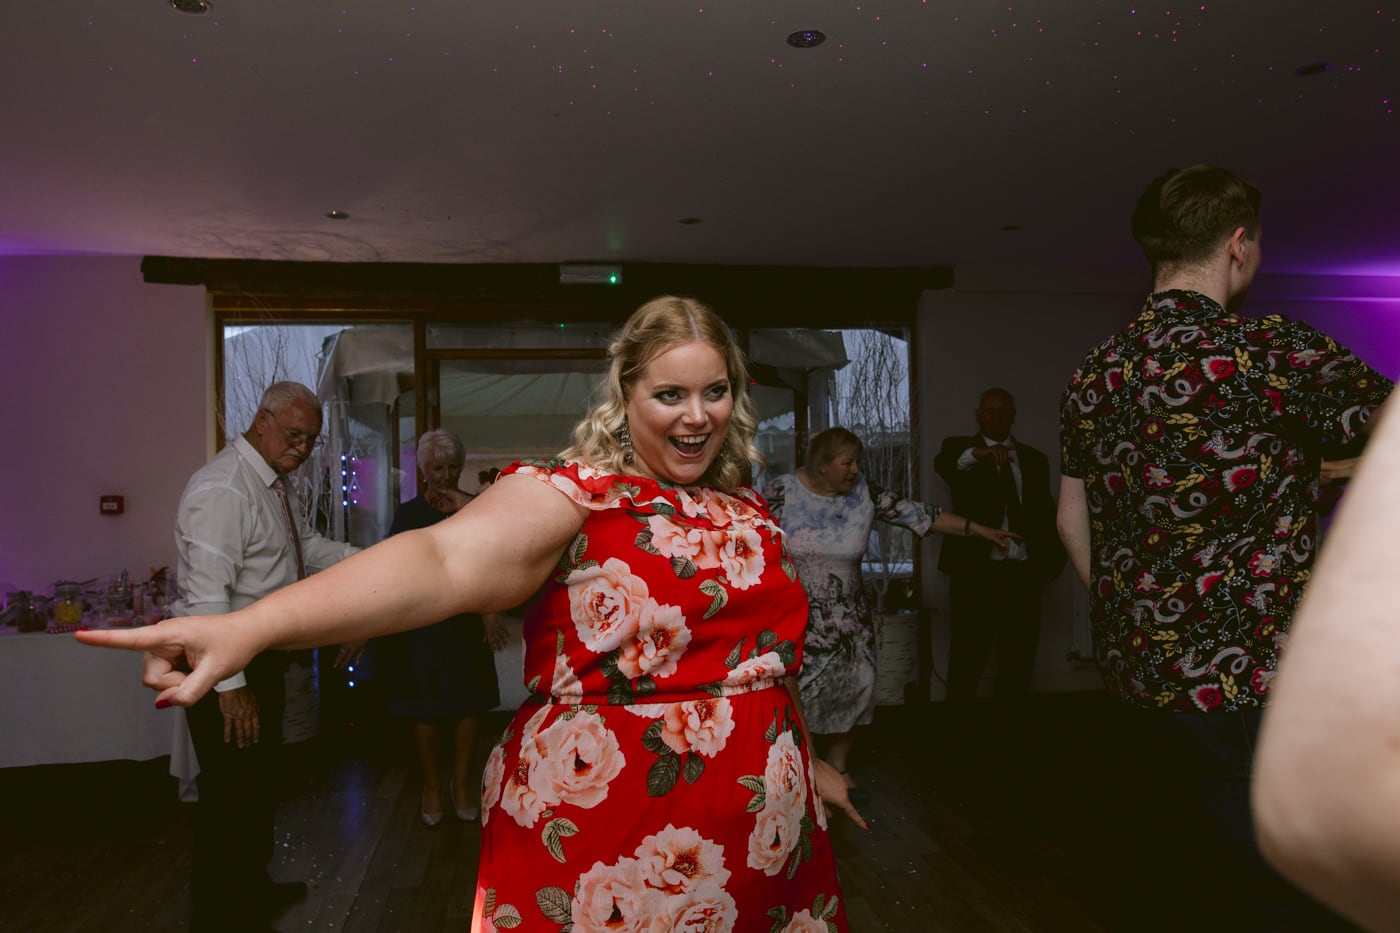 Outstretched Dance move of Guest on Dance Floor in Main Reception Hall Portrait